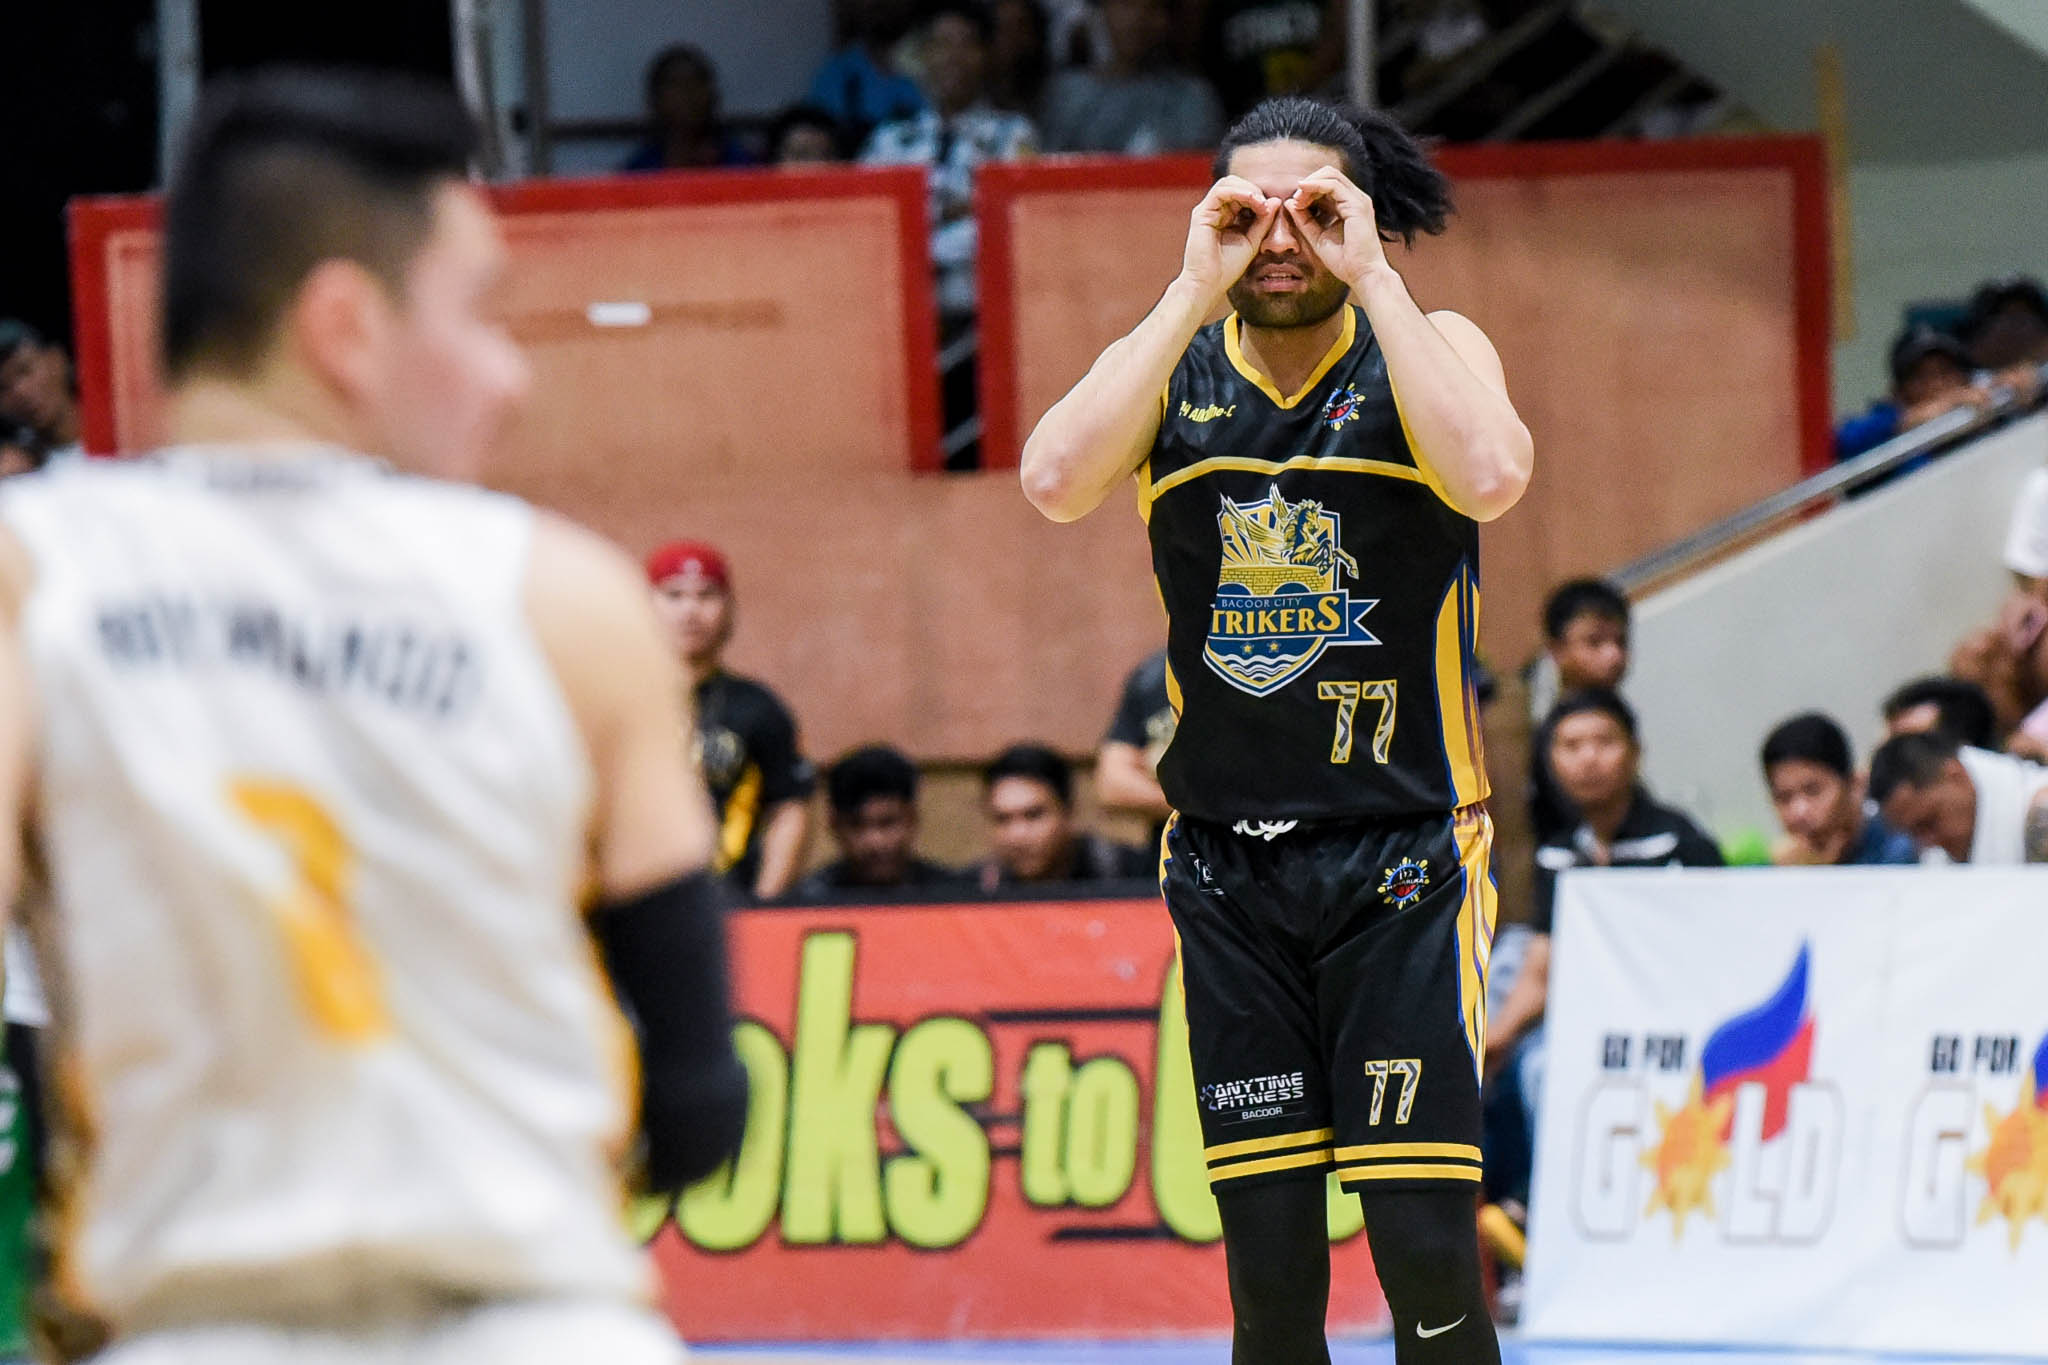 MPBL-2019-2020-Bacoor-vs.-GenSan-3RD-PHOTO-GAB-BANAL-BACOOR Gab Banal hopes PBA return inspires others to not give up on their dreams Basketball News PBA  - philippine sports news